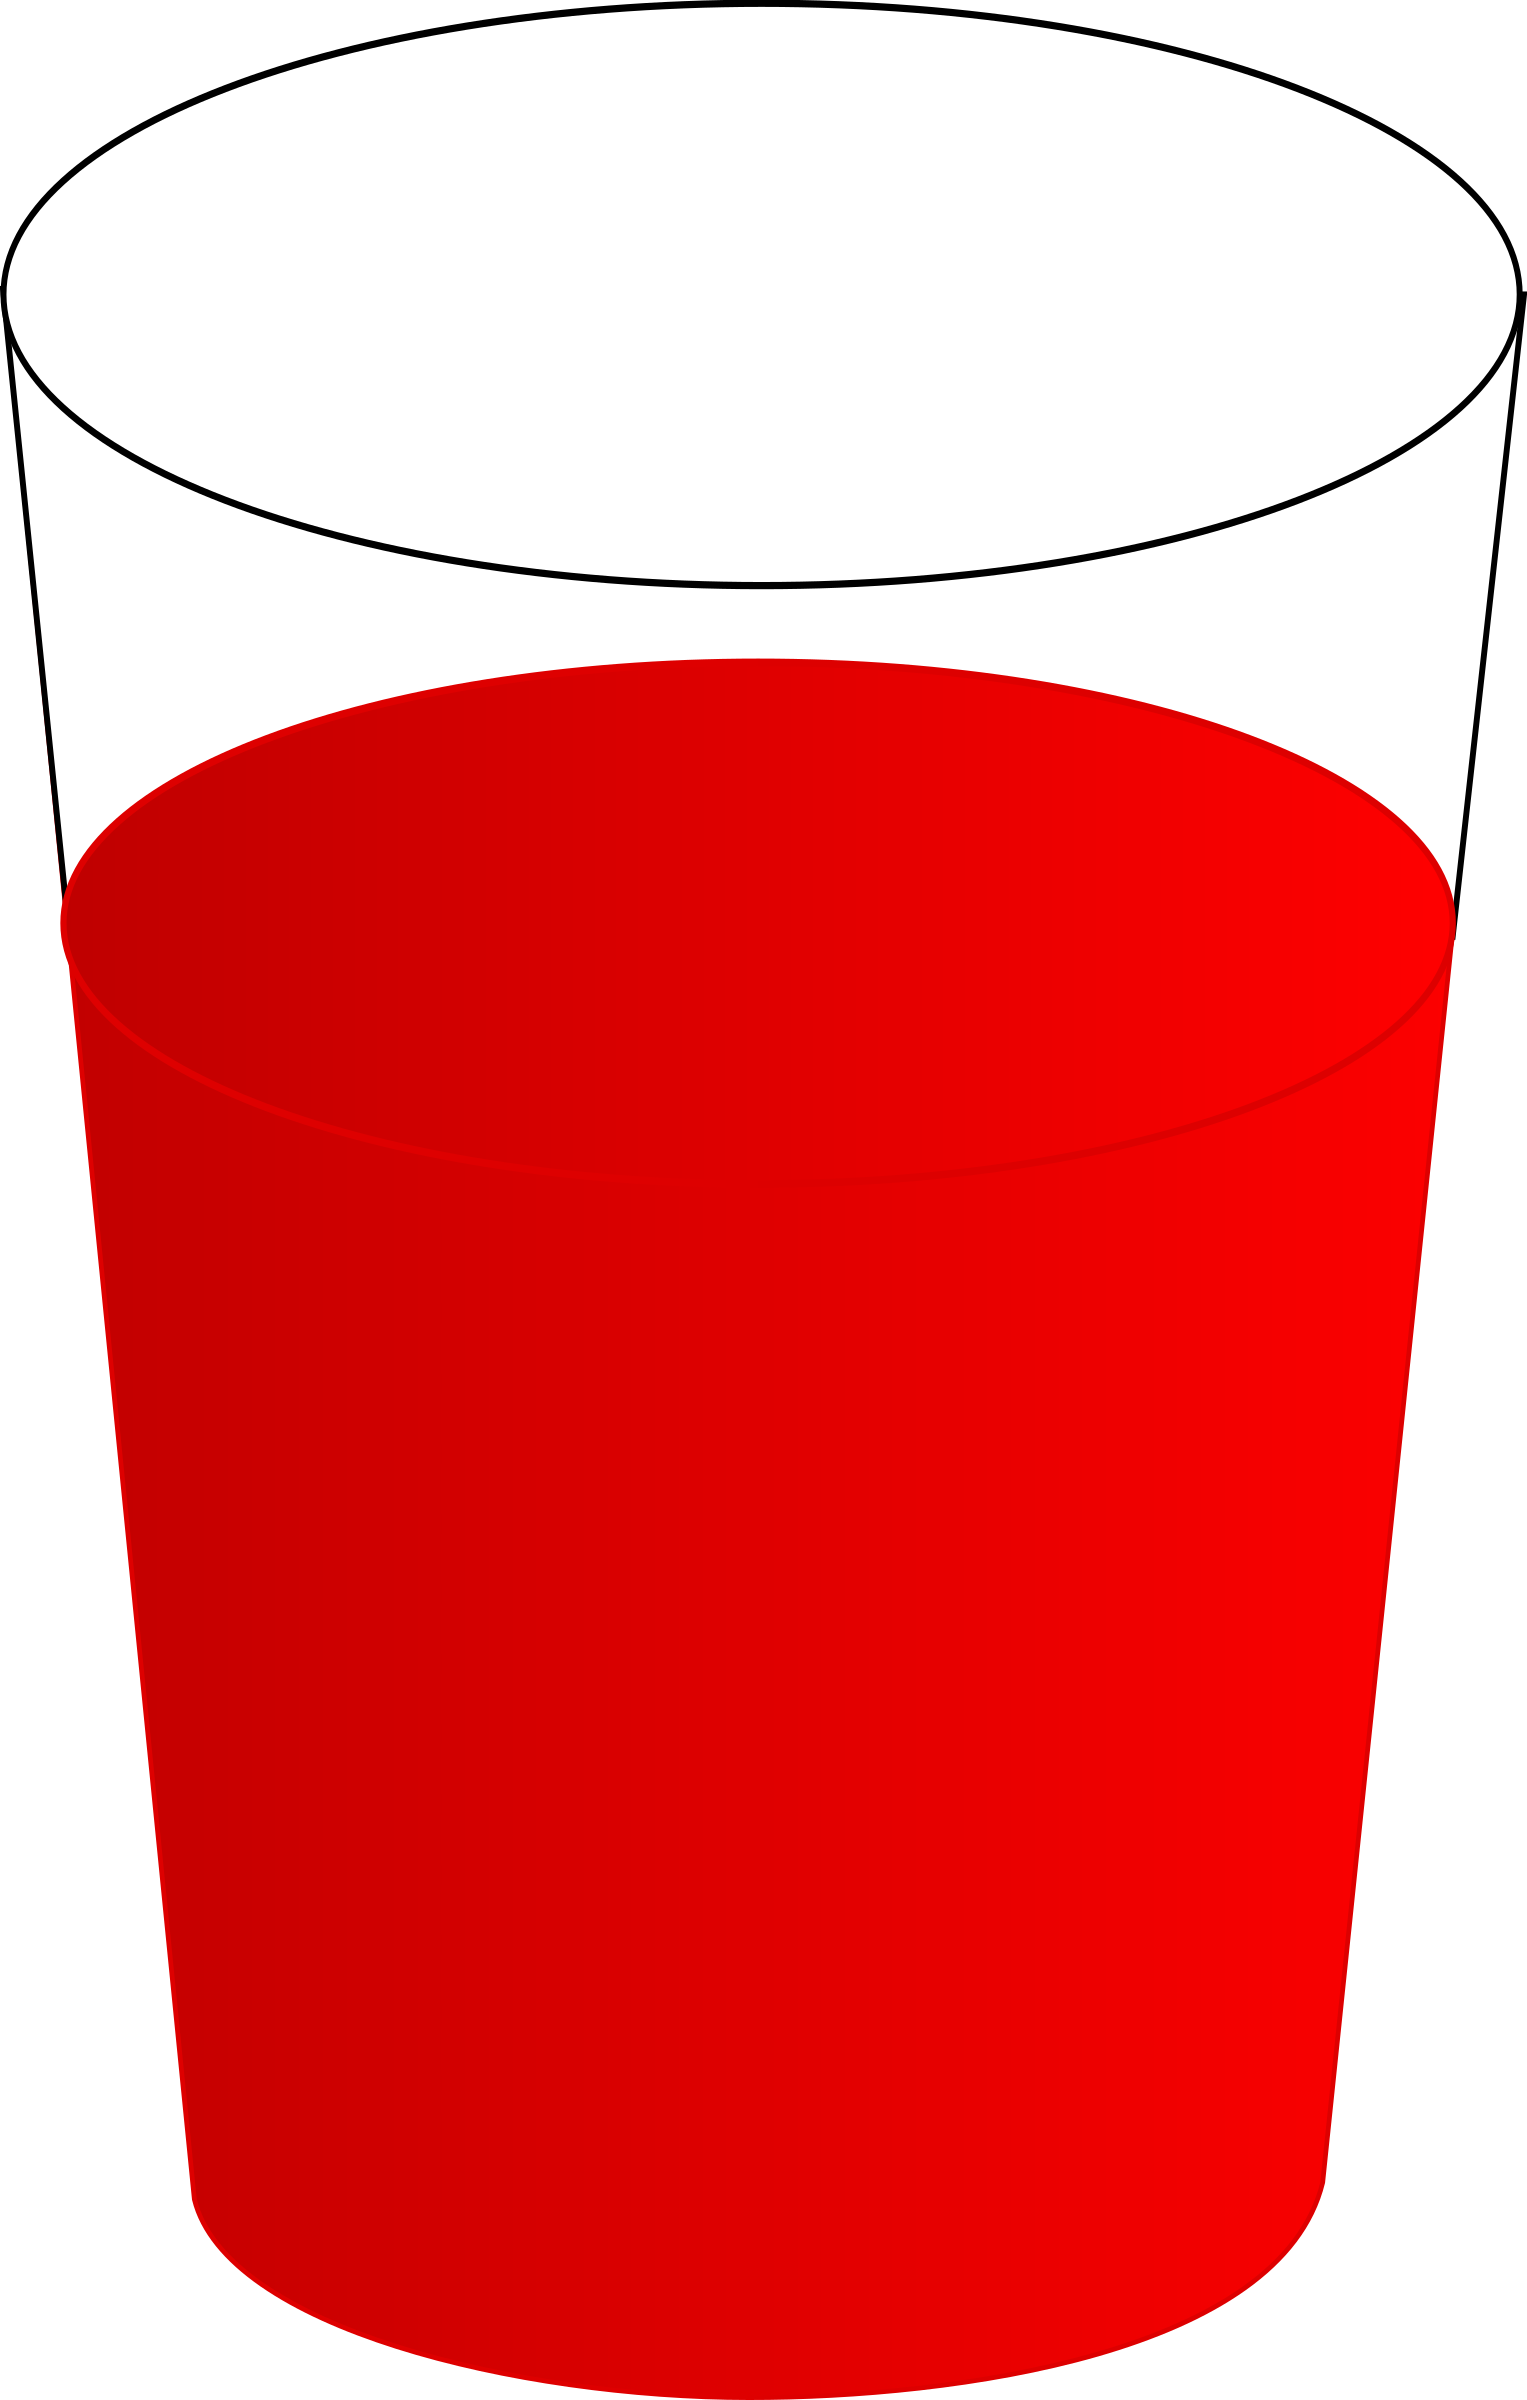 Drinks clipart punch drink. Drinking glass with red